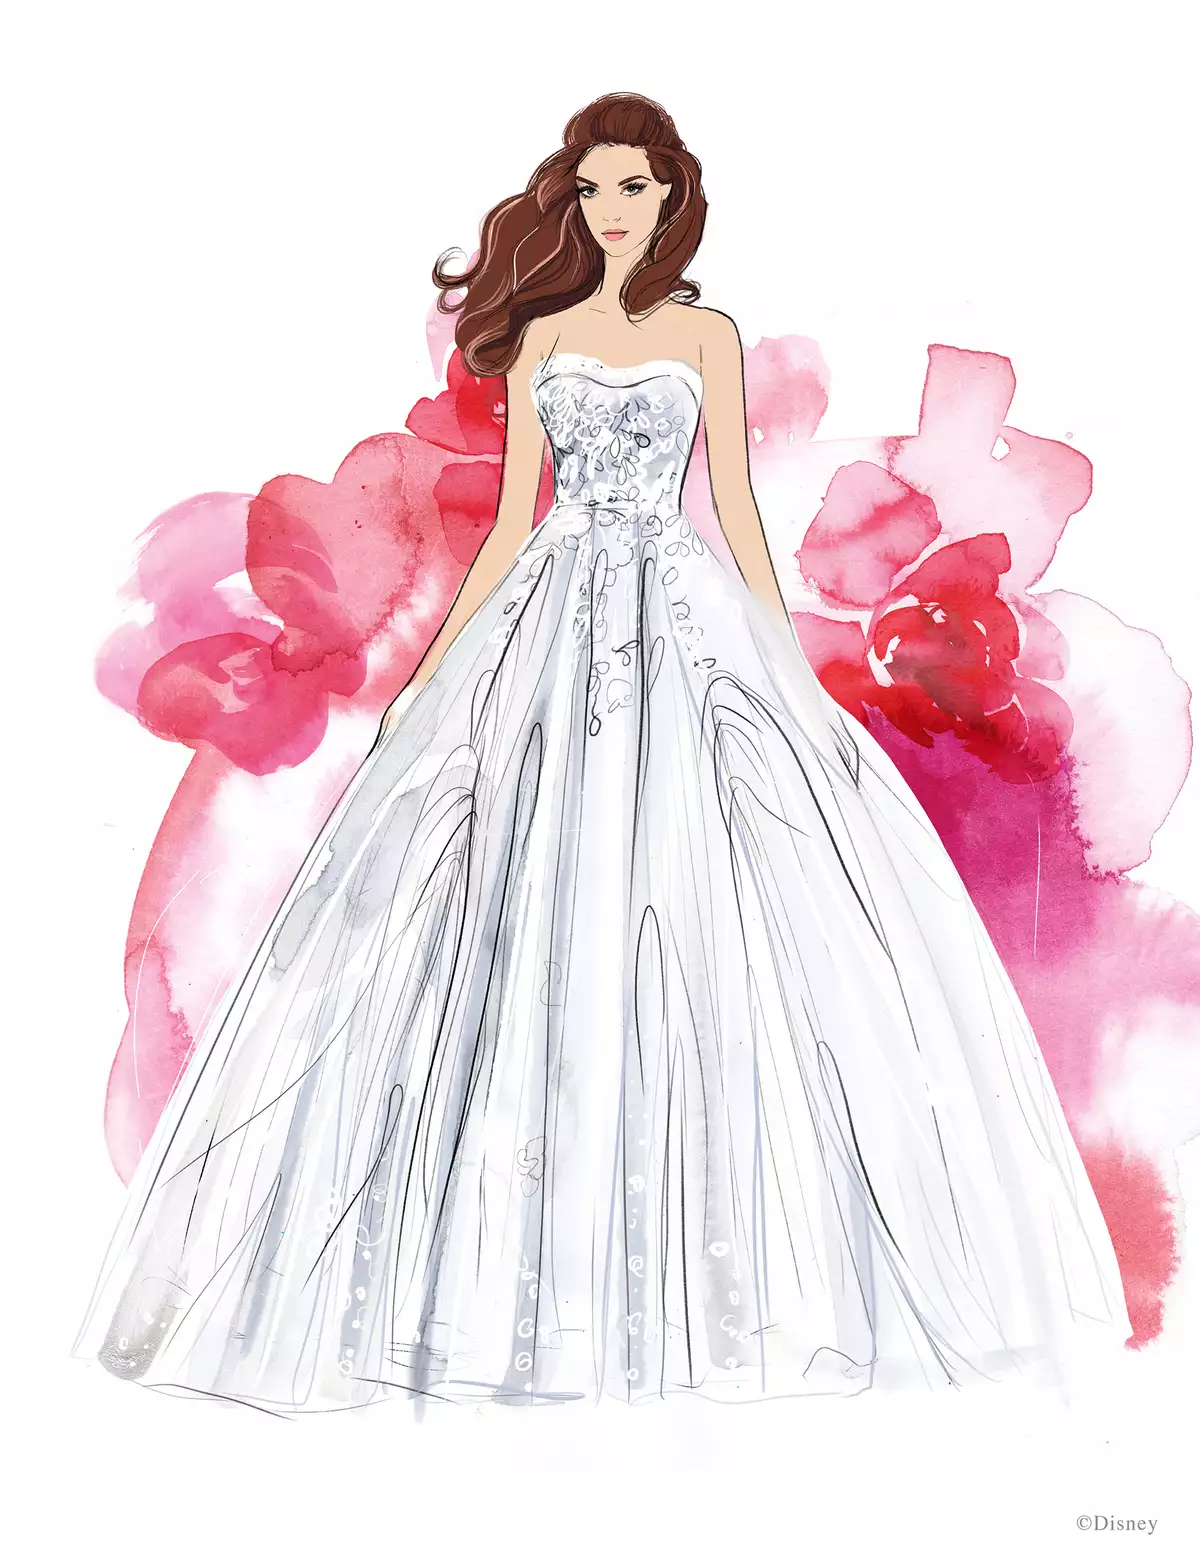 COURTESY OF DISNEY AND ALLURE BRIDALS